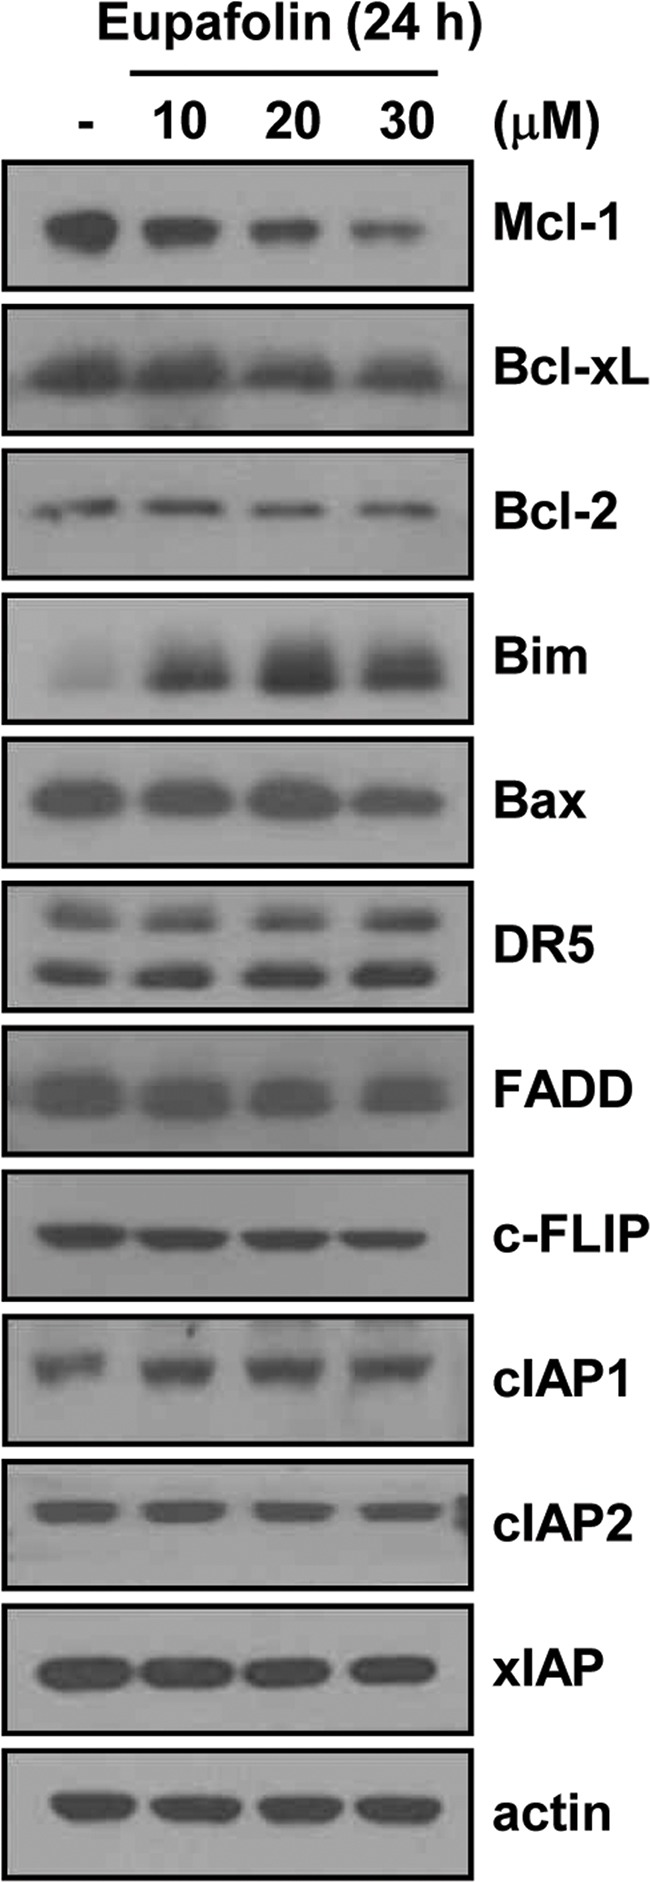 Effects of eupafolin on expression levels of apoptosis-related proteins Caki cells were treated with the indicated concentrations of eupafolin for 24 h. The protein levels of Mcl-1, Bcl-xL, Bcl-2, Bim, Bax, DR5, FADD, c-FLIP, cIAP1, cIAP2, XIAP, and actin were determined by Western blotting. The level of actin was used as a loading control.